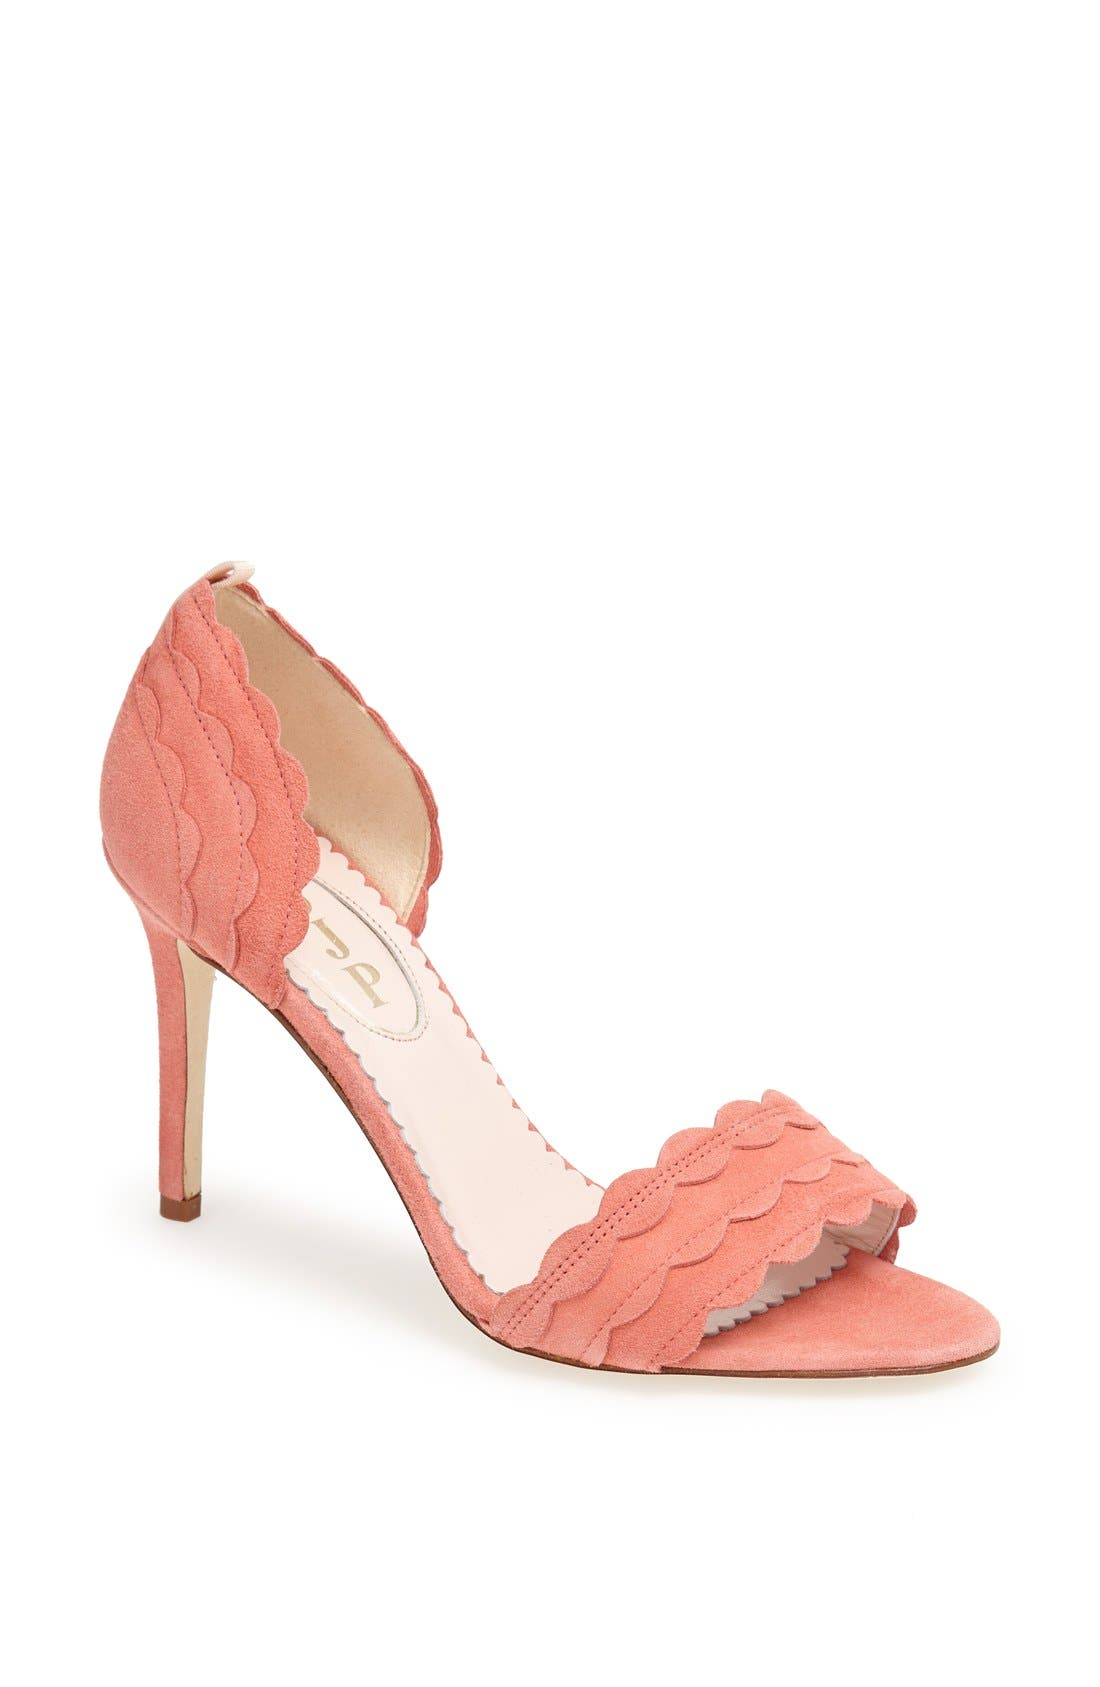 Alternate Image 1 Selected - SJP by Sarah Jessica Parker Bobbie Sandal (Nordstrom Exclusive)